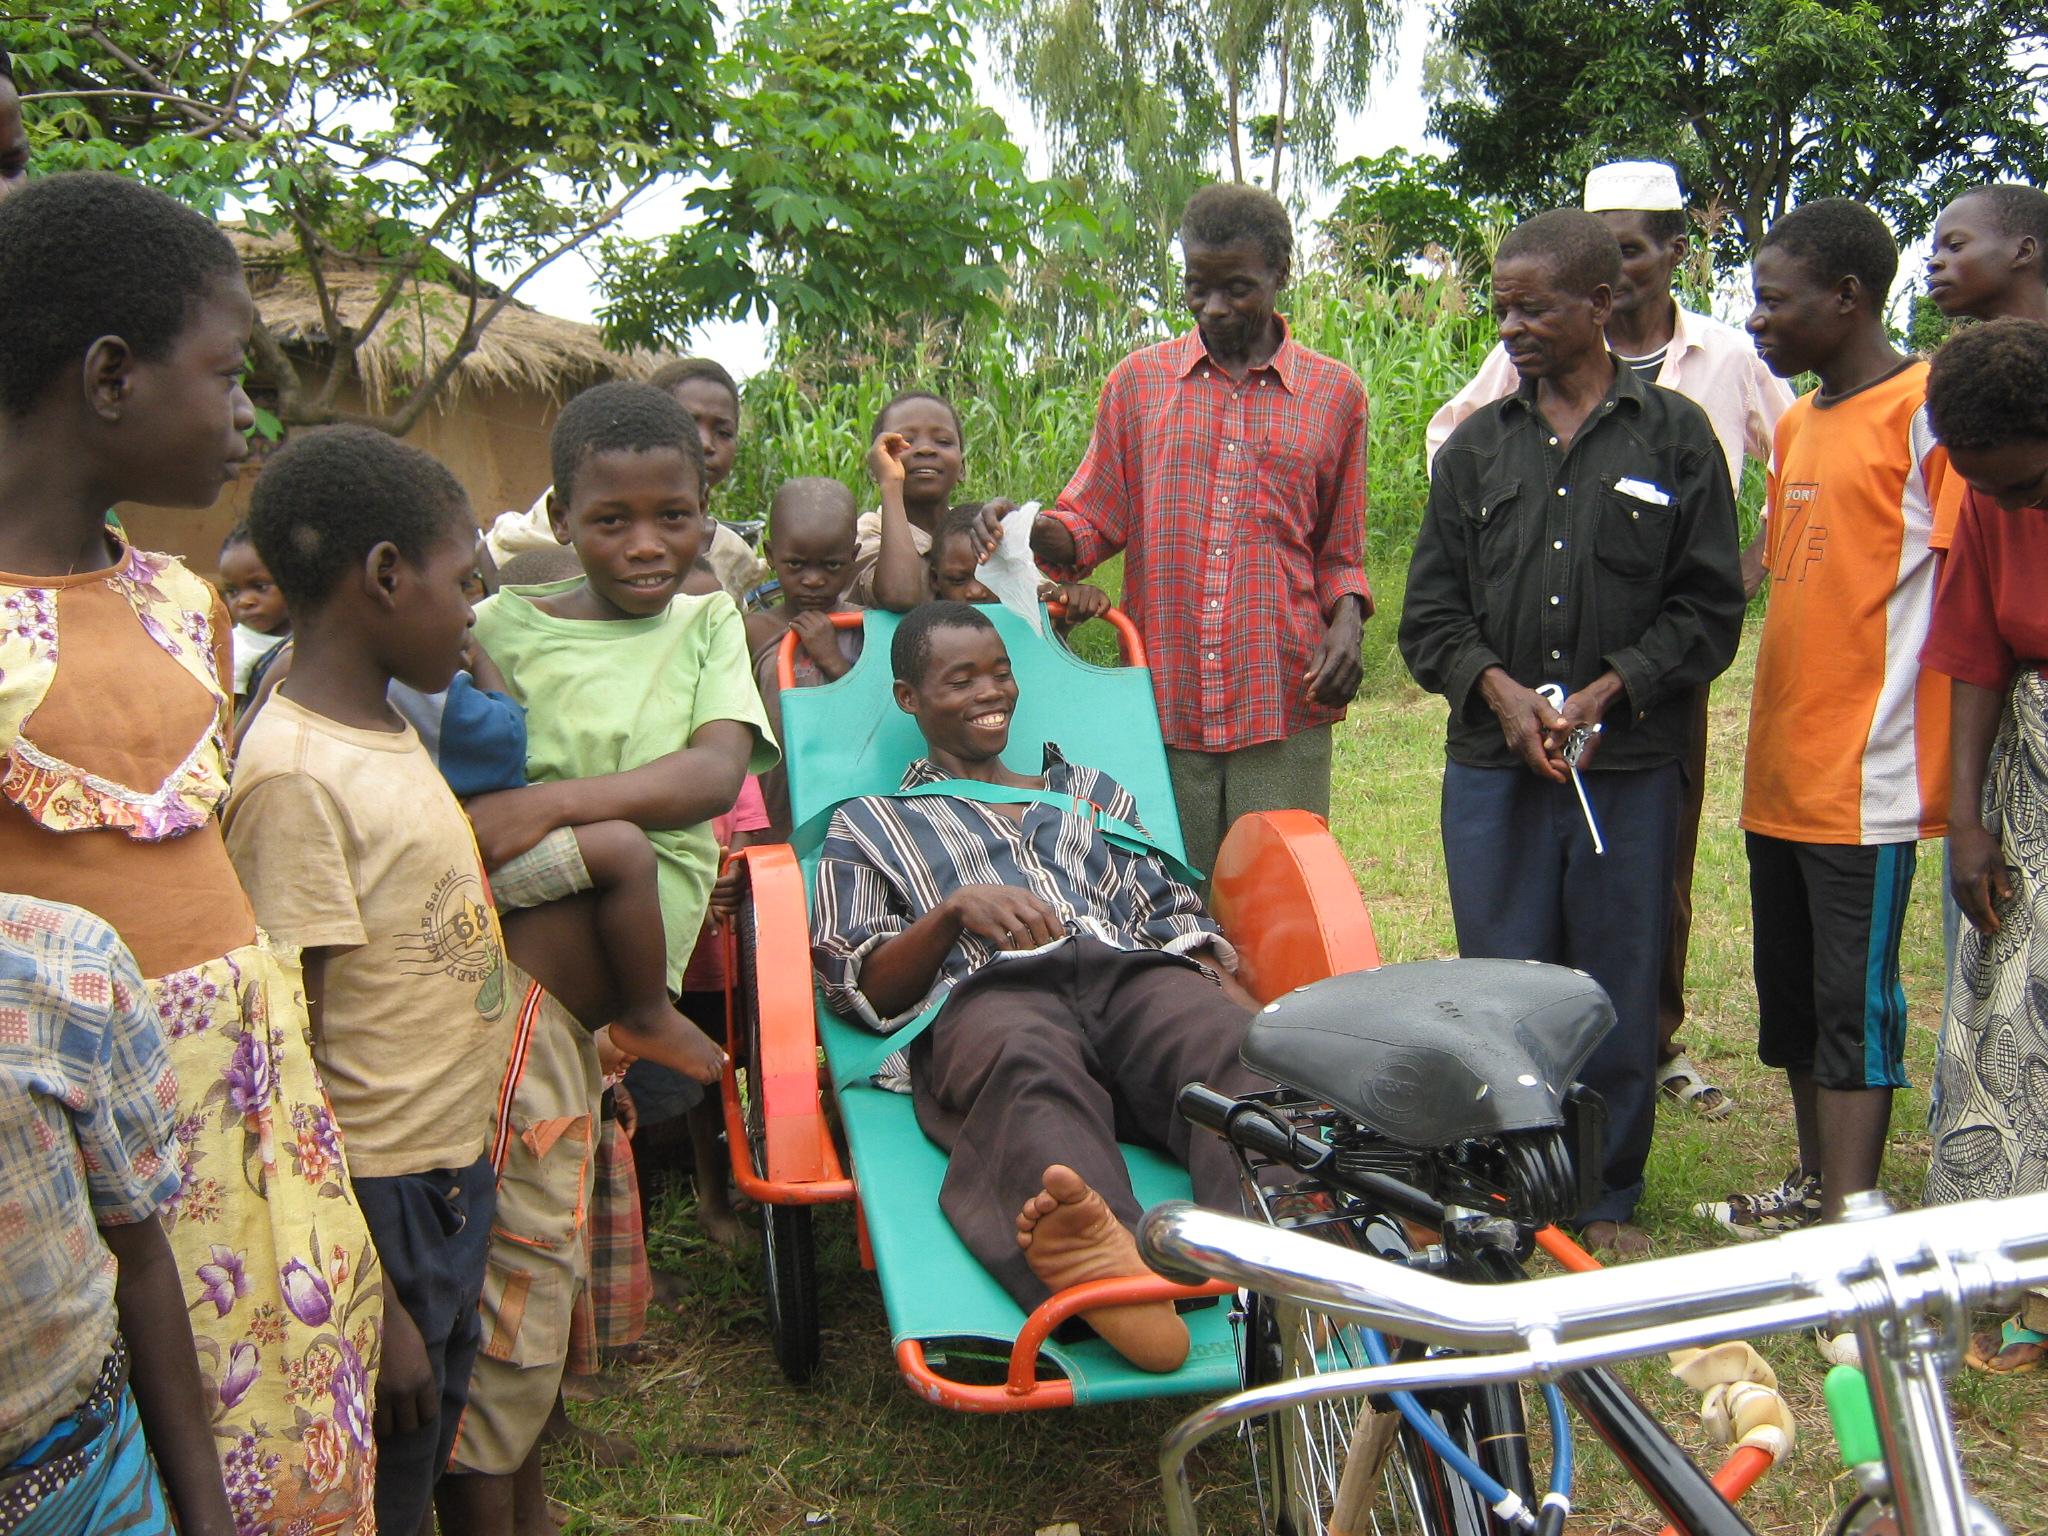 A local patient in Malawi, Africa, getting transported to medical care.